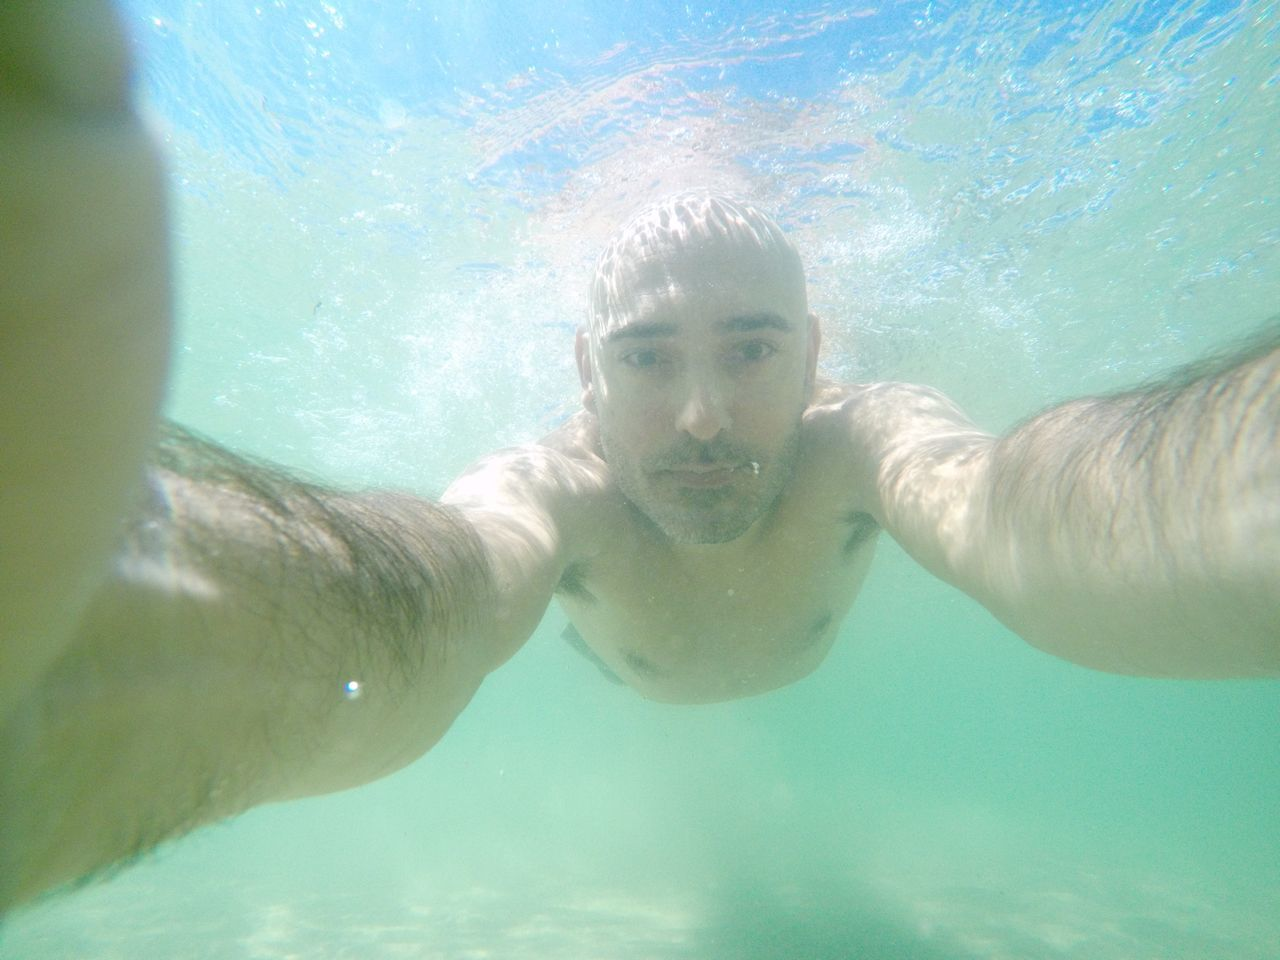 water, underwater, swimming, young adult, one person, portrait, looking at camera, lifestyles, leisure activity, young men, real people, swimming pool, healthy lifestyle, young women, undersea, shirtless, day, sea, selfie, nature, outdoors, close-up, mammal, people